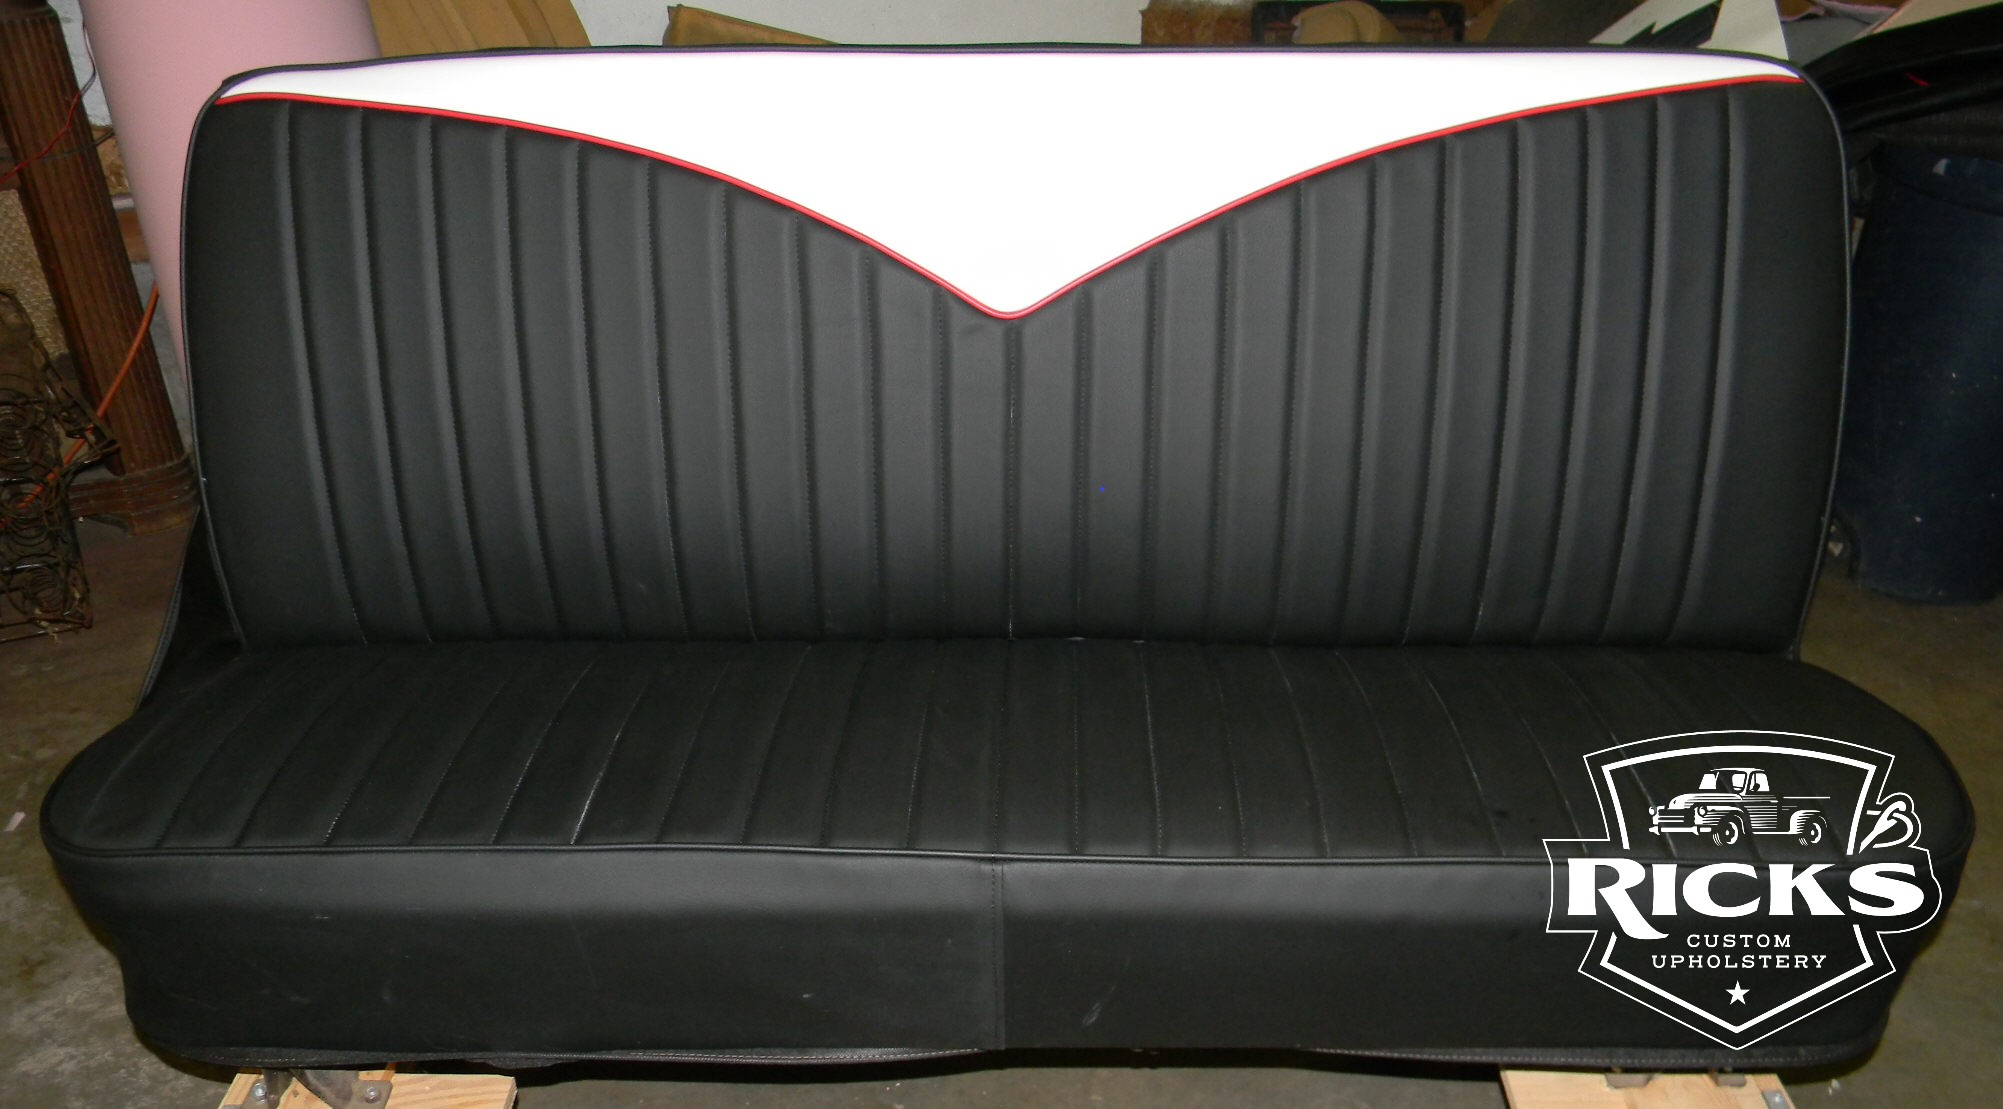 Rick S Custom Upholstery Items For Sale Page